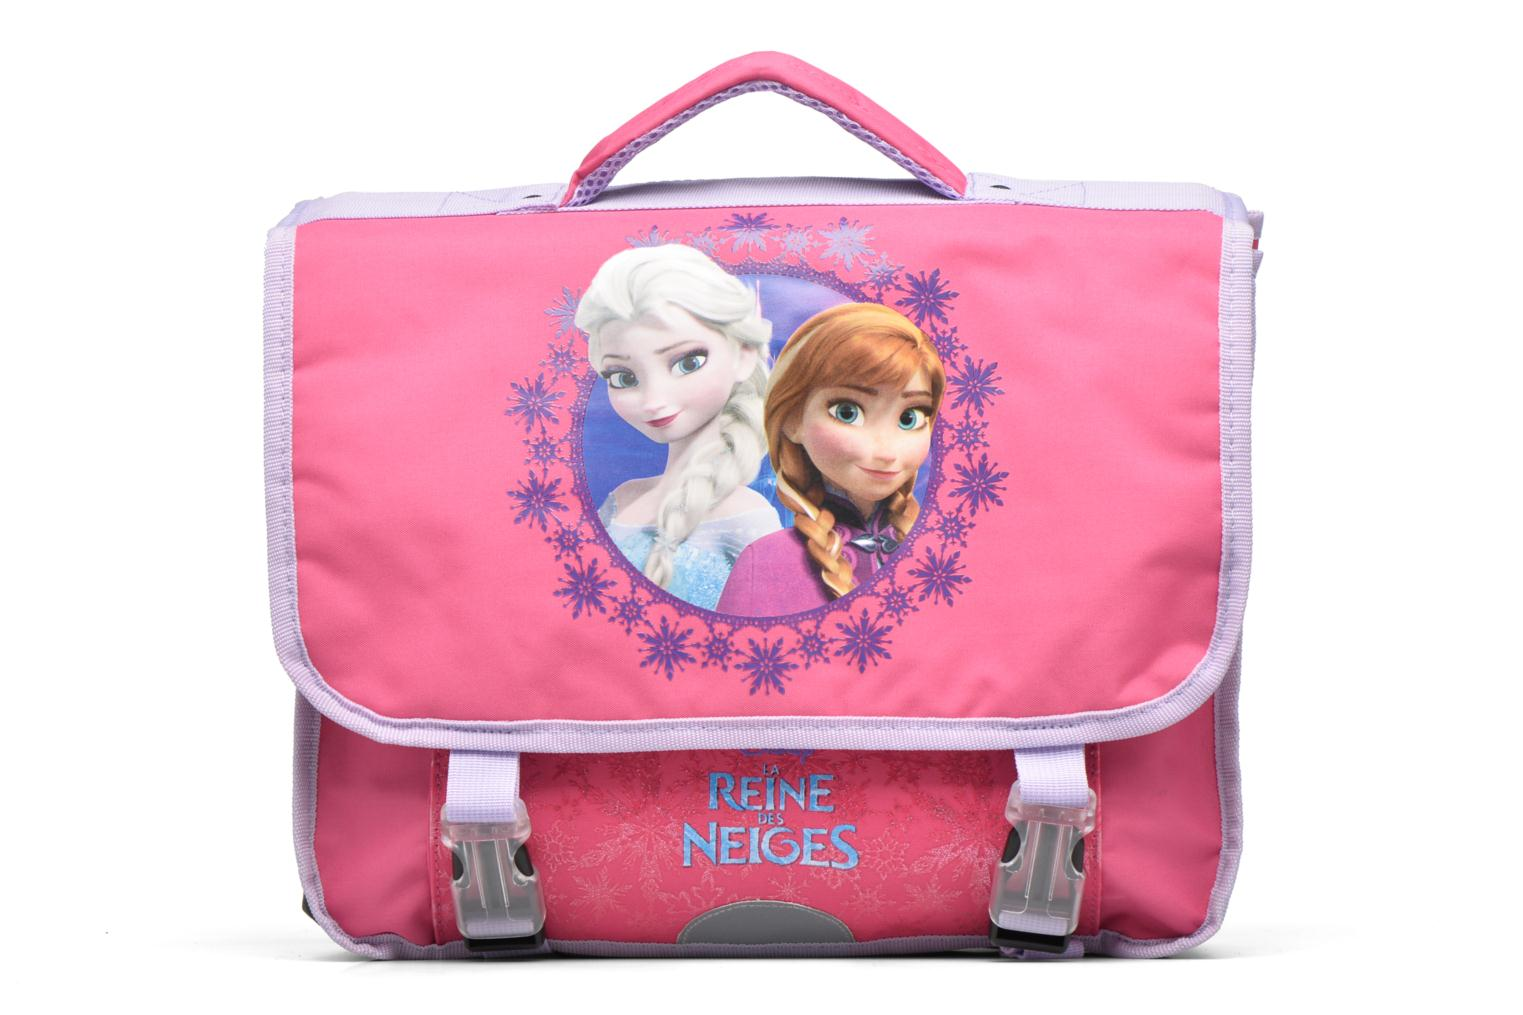 Cartable 38cm Reine des neiges 2 Rose